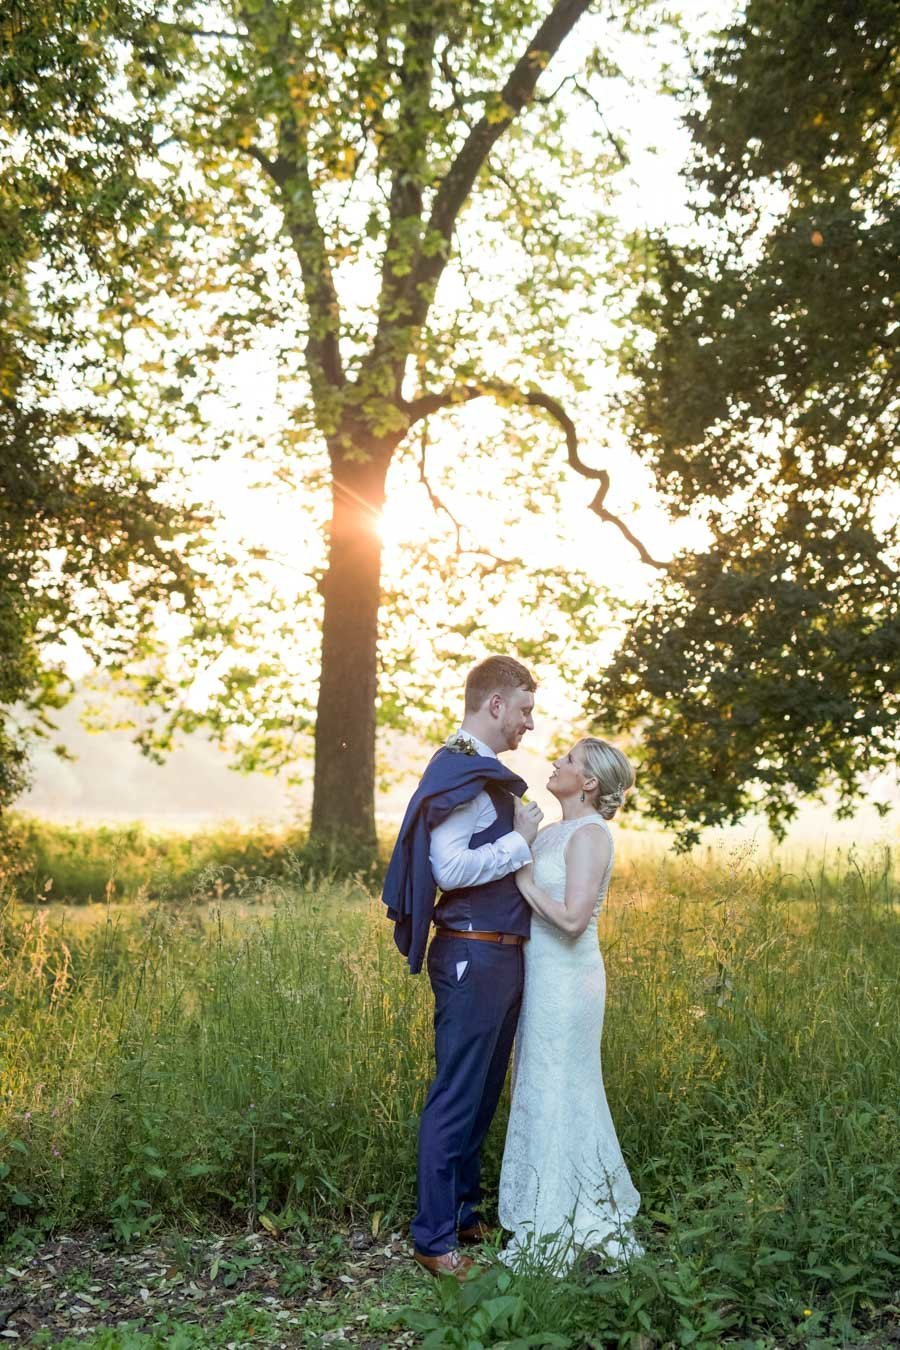 Sunset wedding photography at Rockbeare Manor Exeter